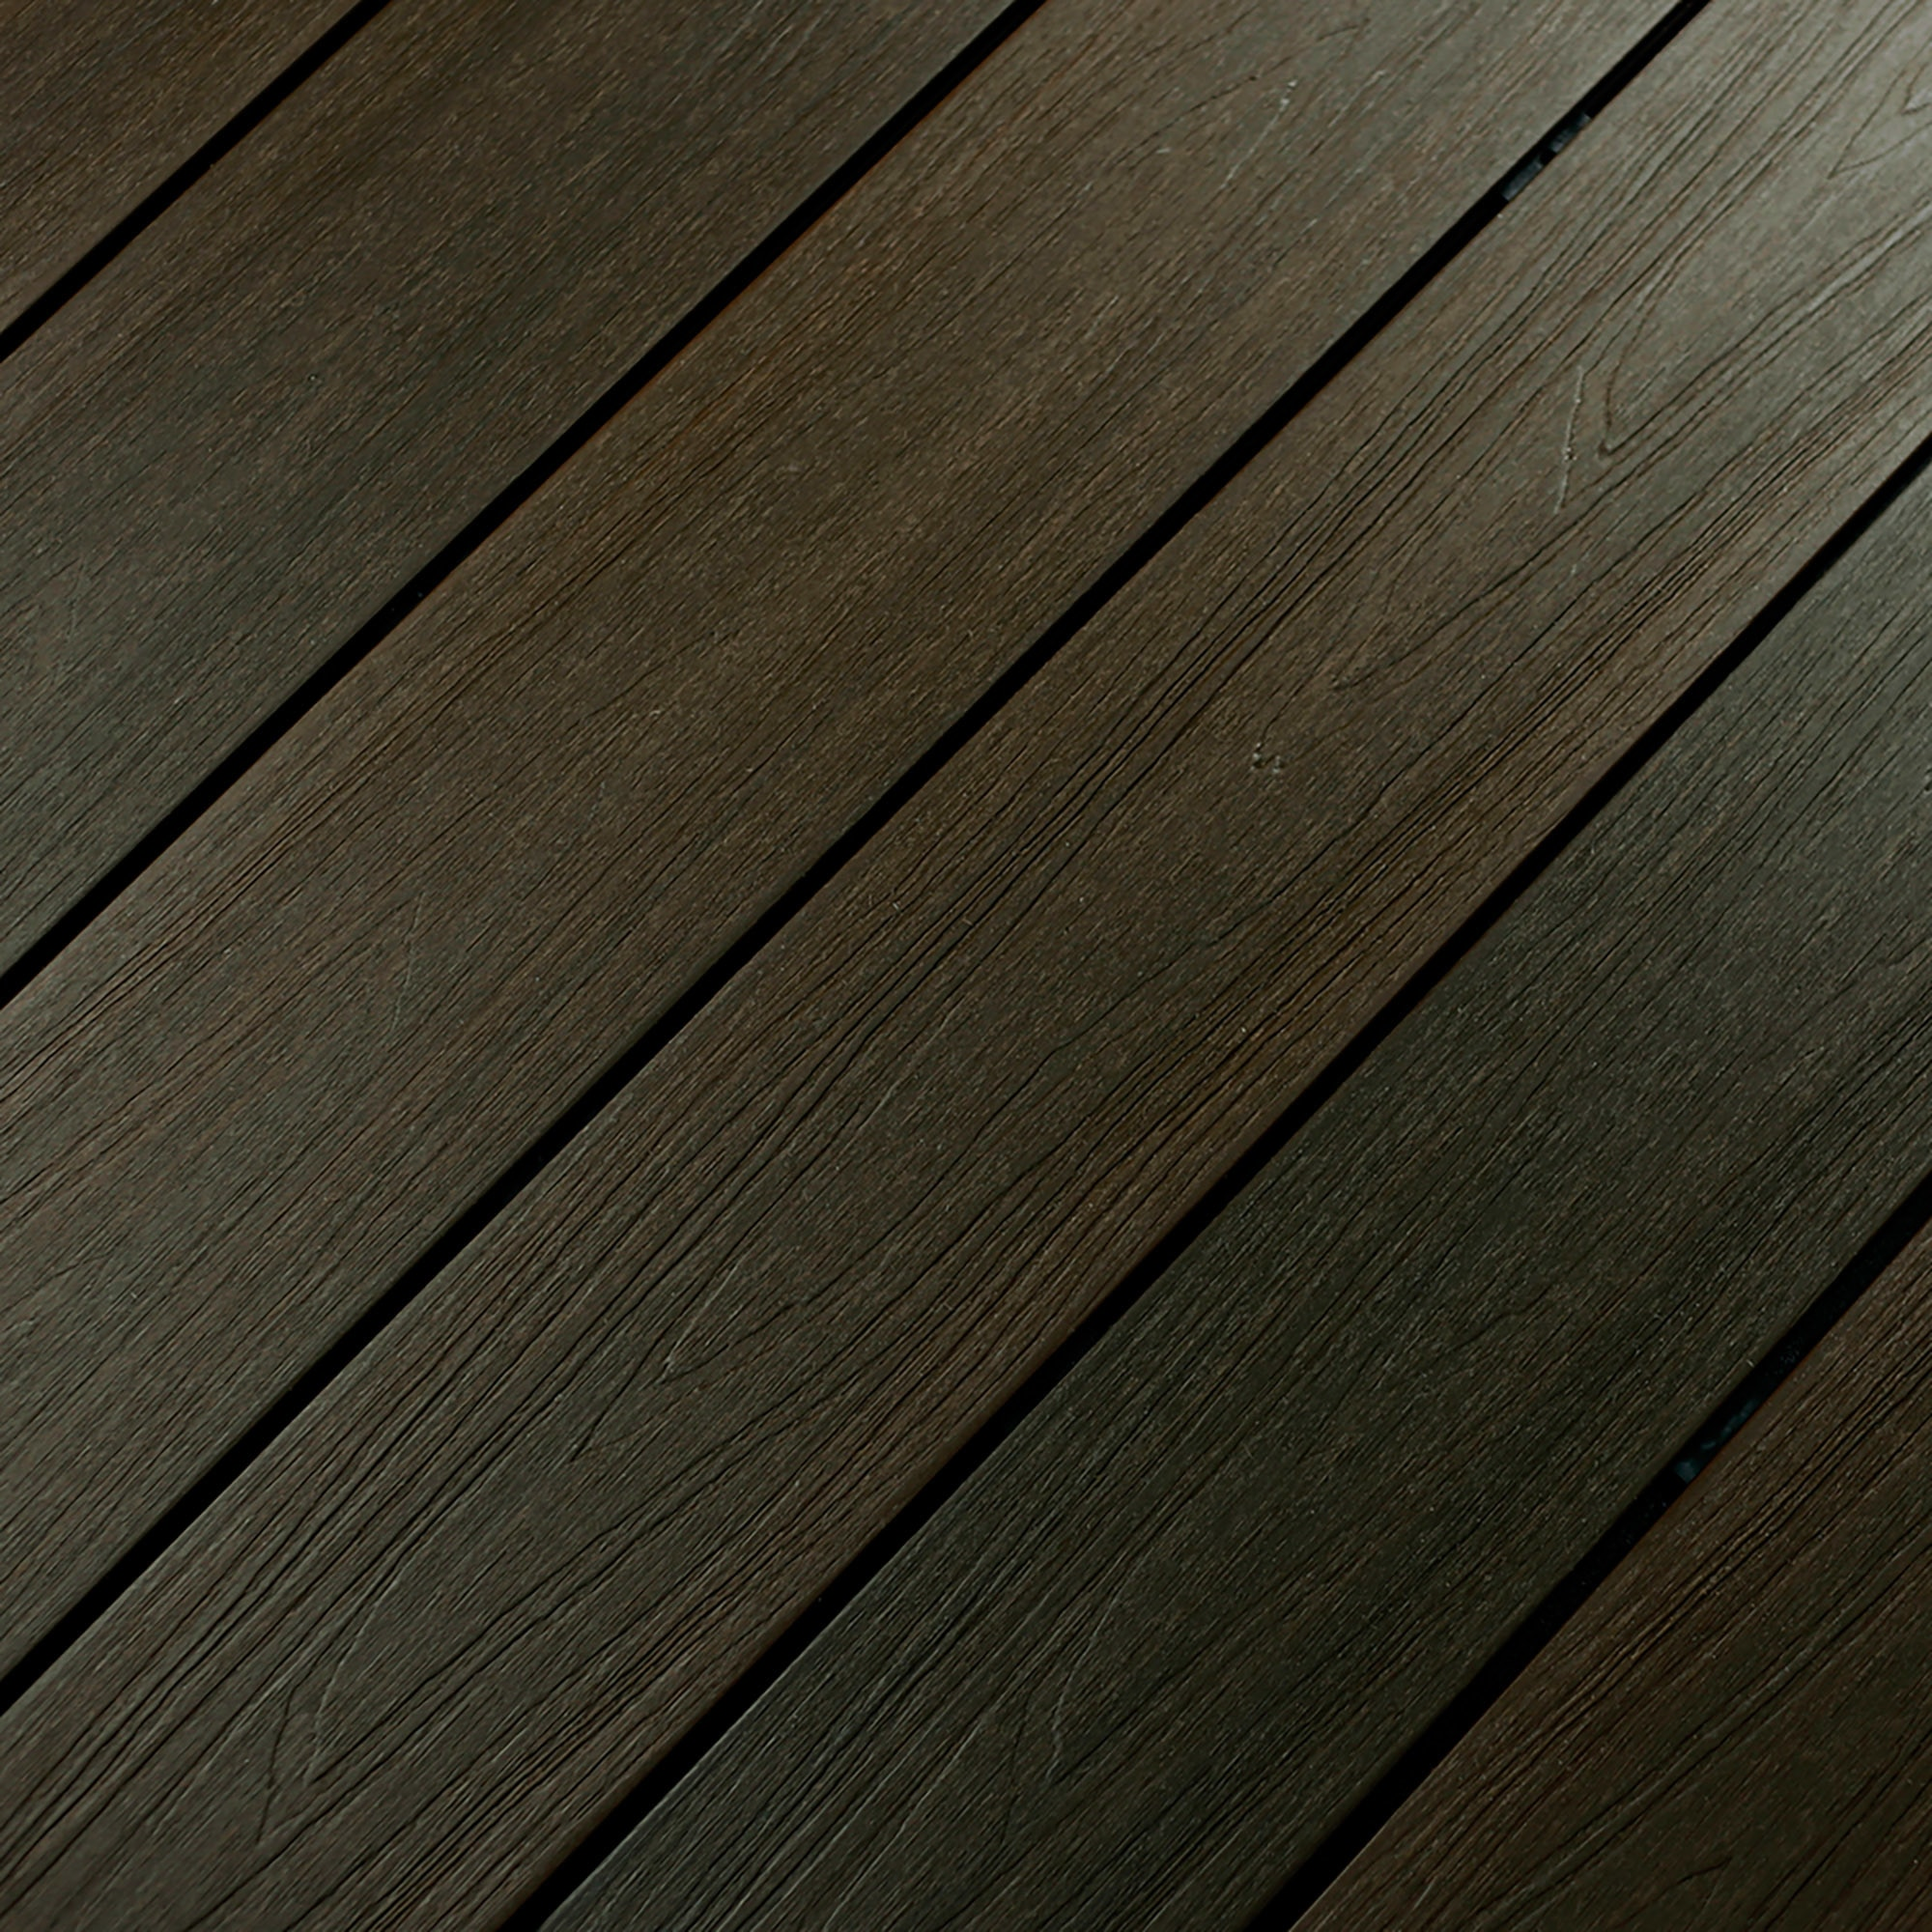 """Walnut / Solid Grooved / 7/8""""x5 3/8""""x16' Dura-Shield Ultratex Composite Decking 0"""